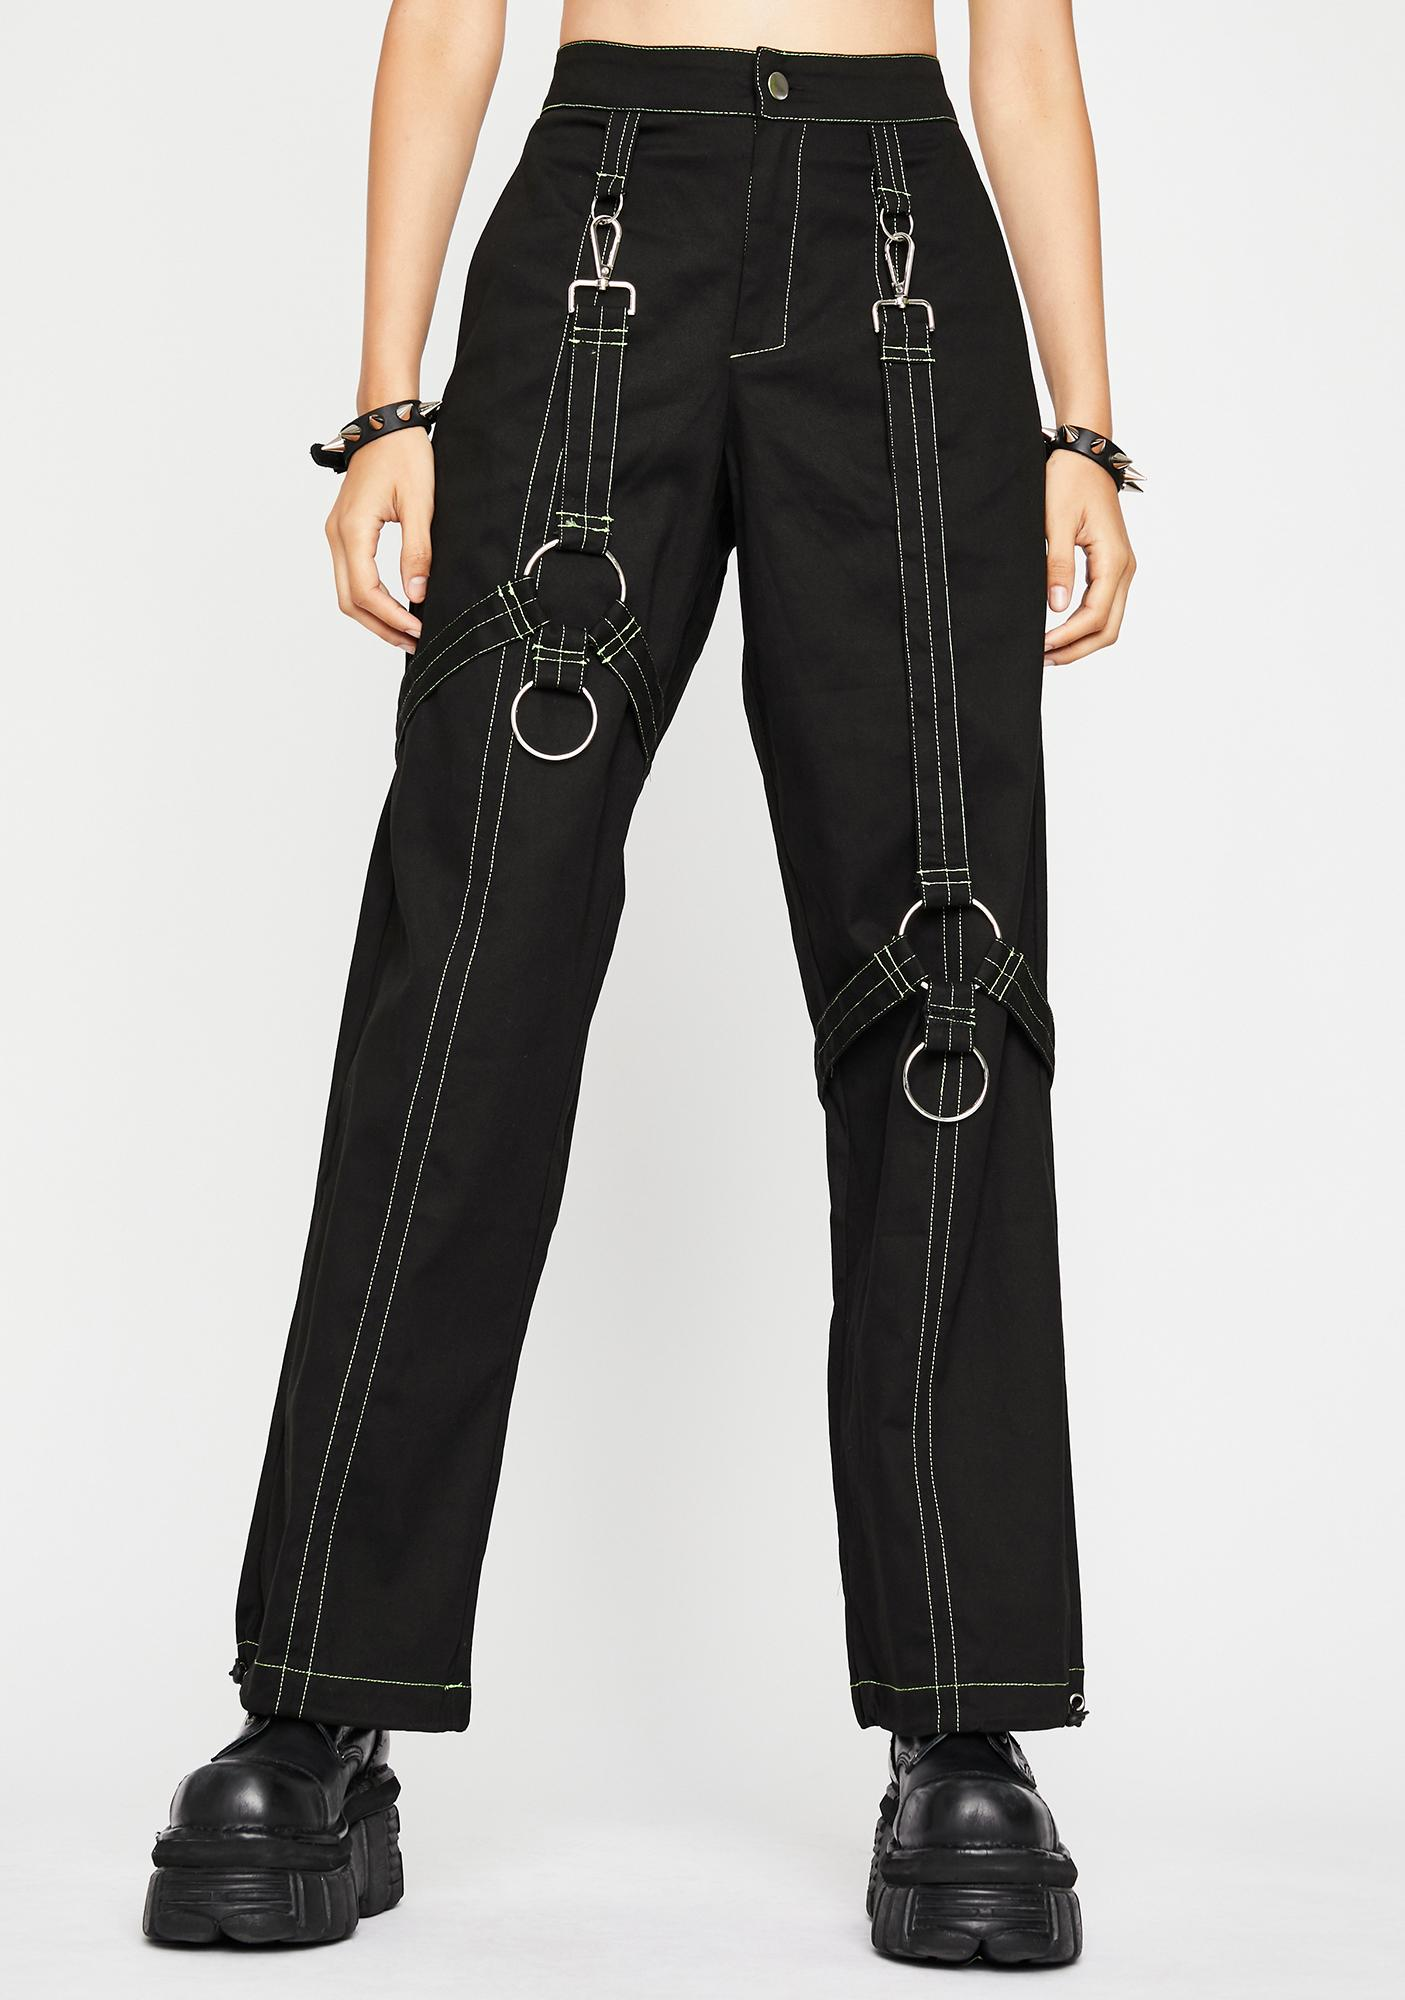 Catch A Case O-Ring Pants